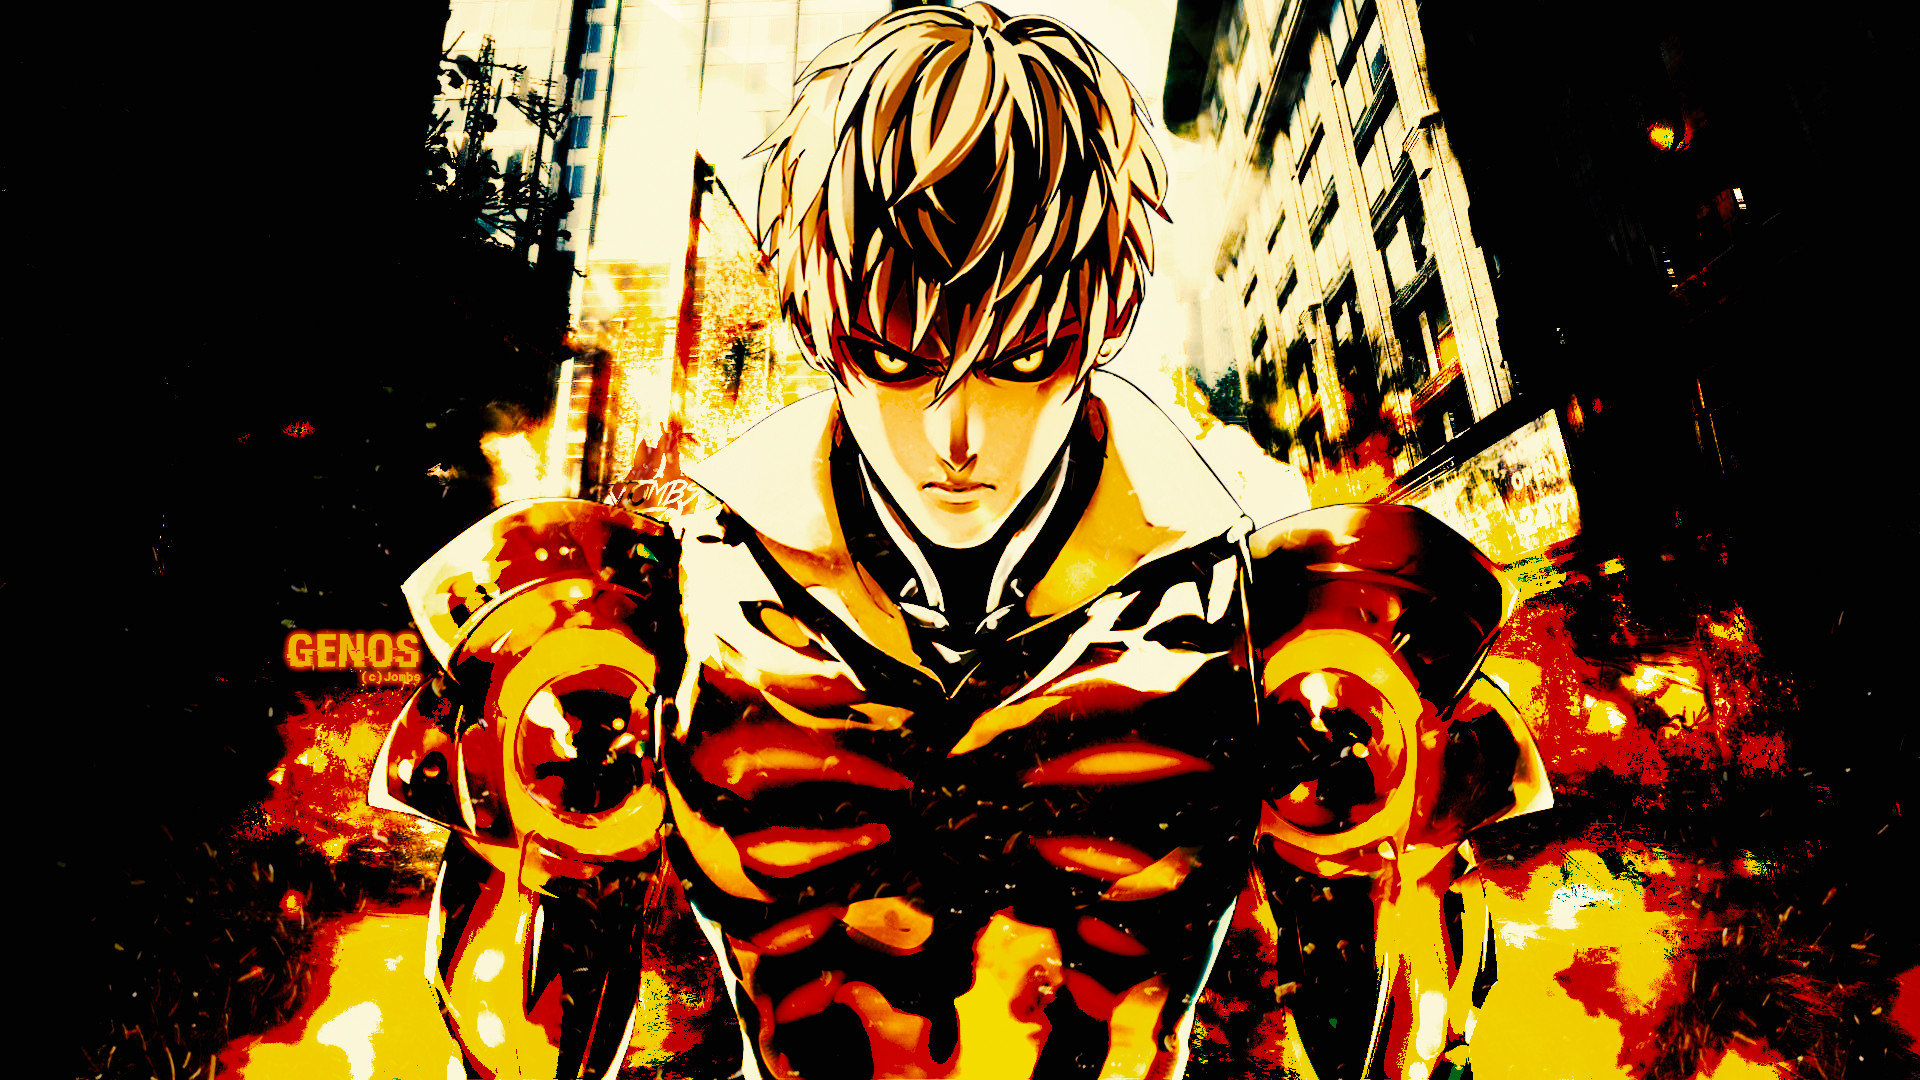 Best Genos (One-Punch Man) wallpaper ID:345502 for High Resolution hd 1920x1080 PC